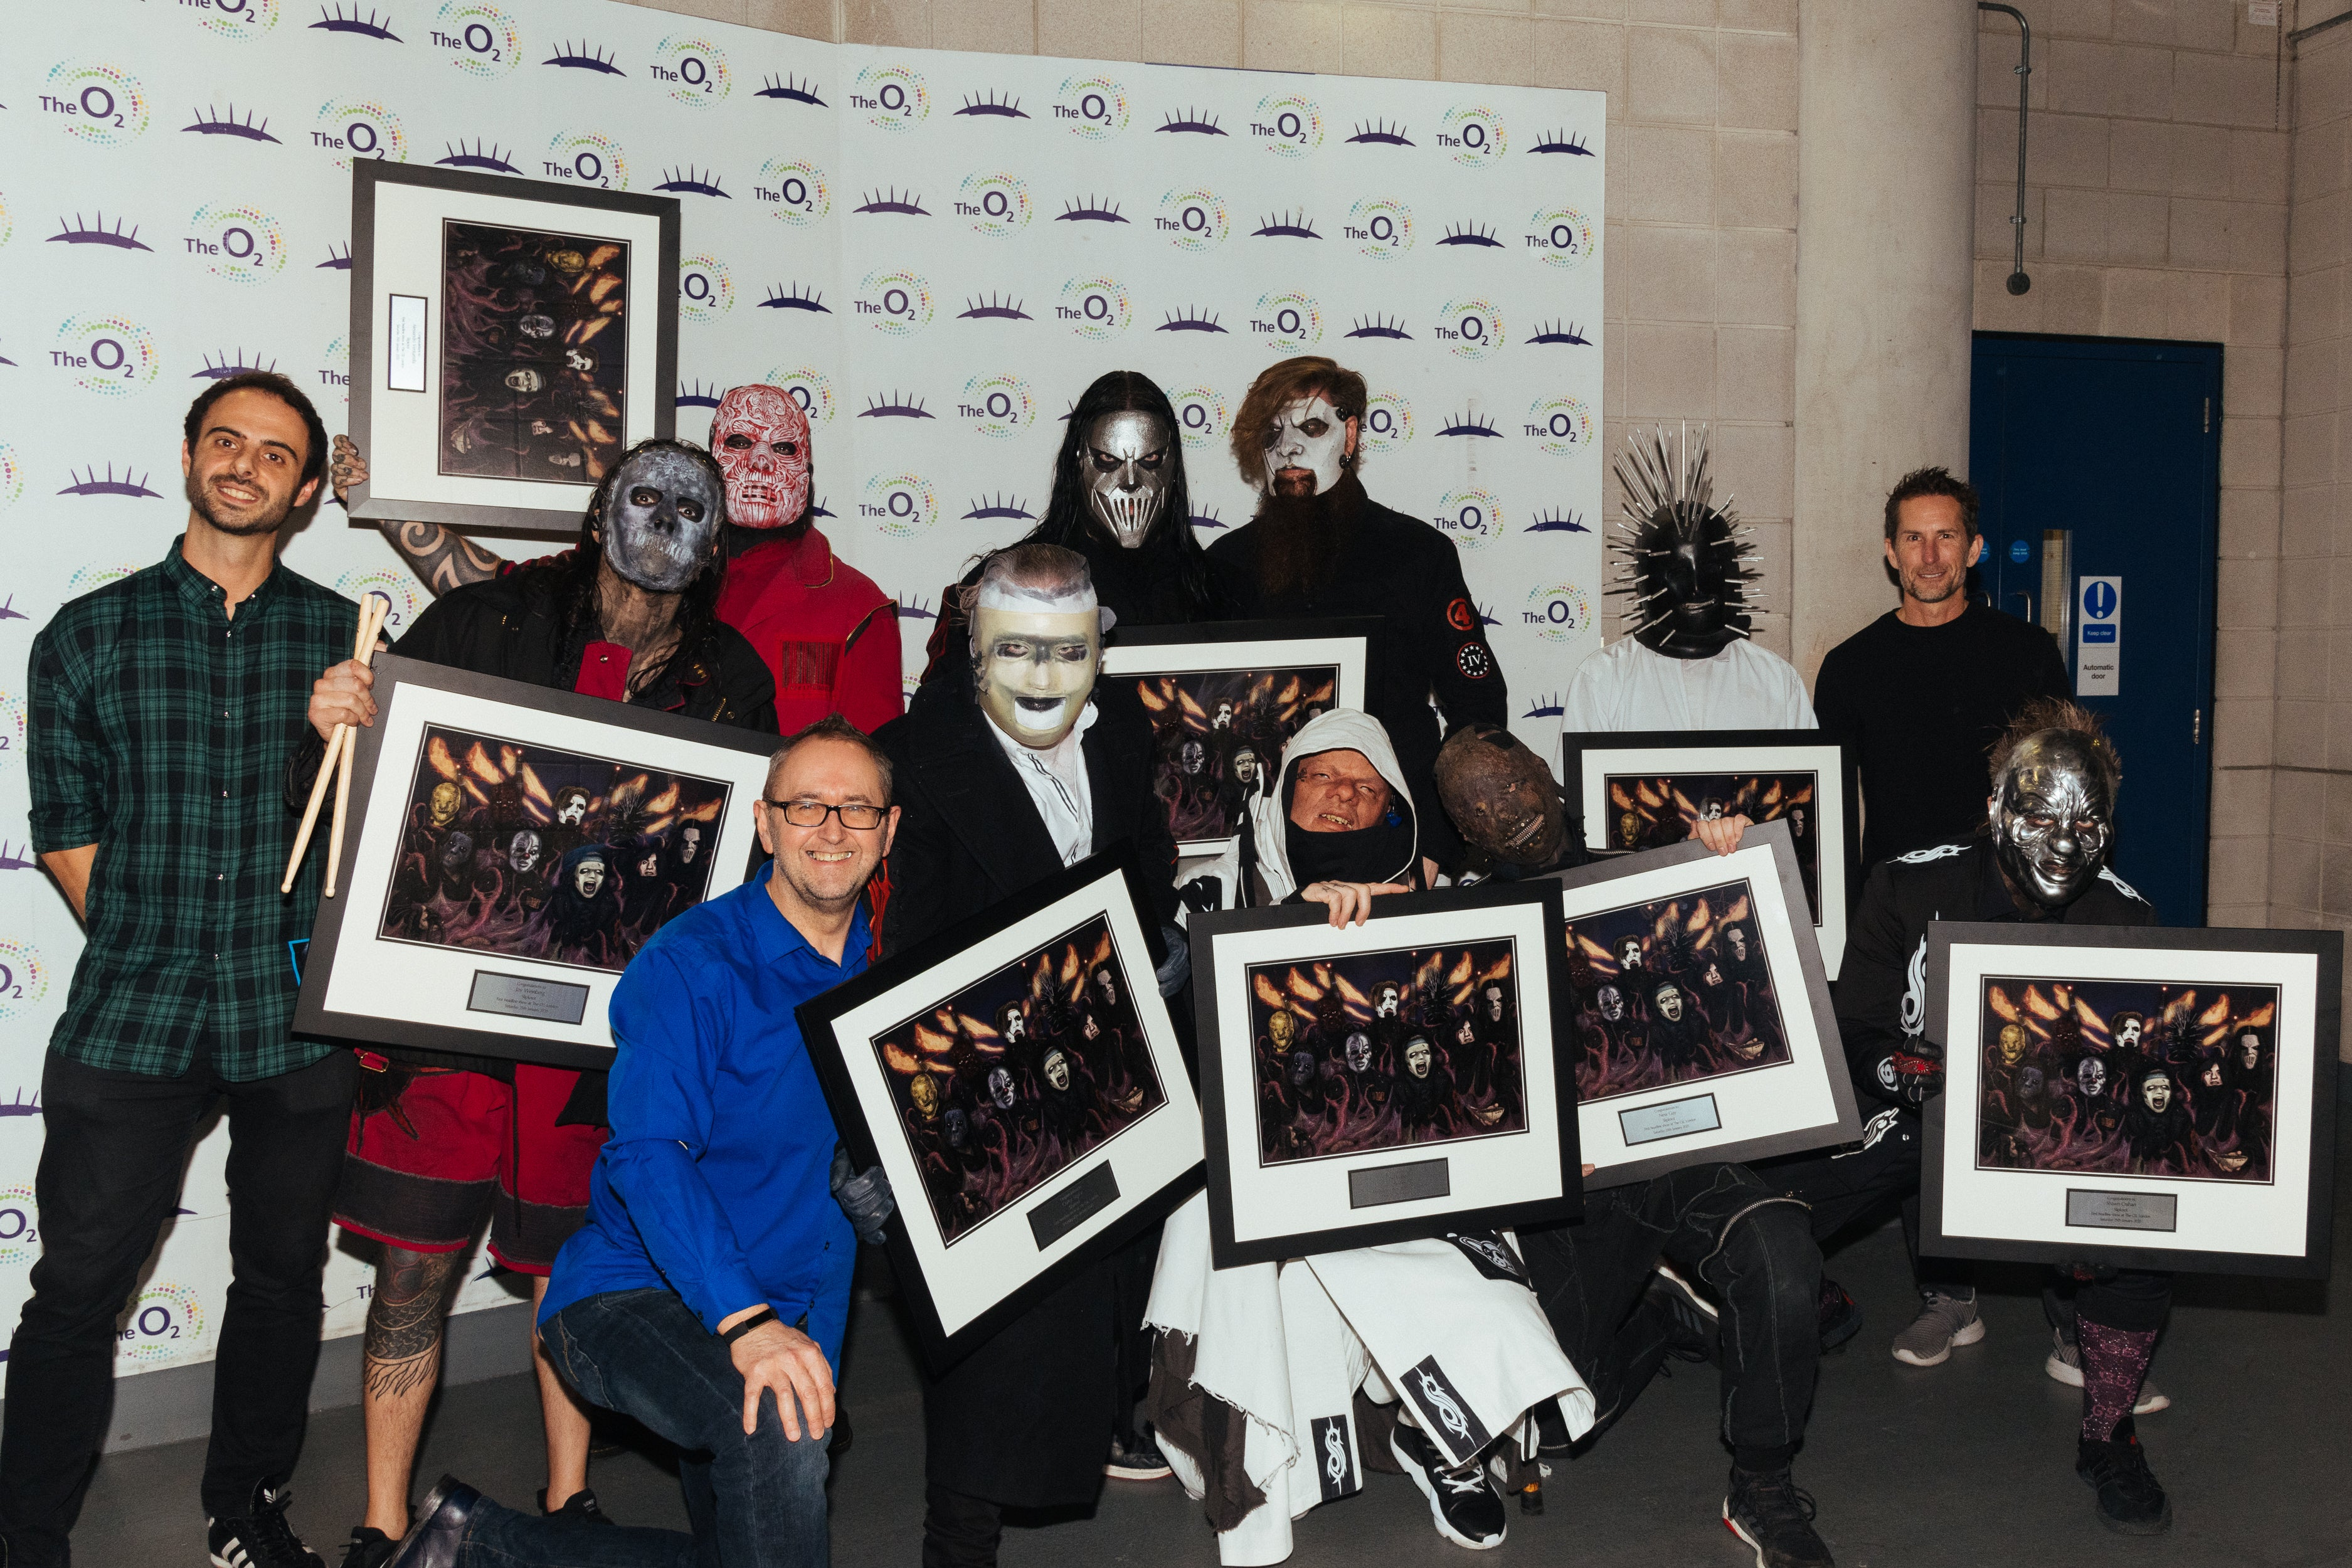 Slipknot presented with First Time award at The O2